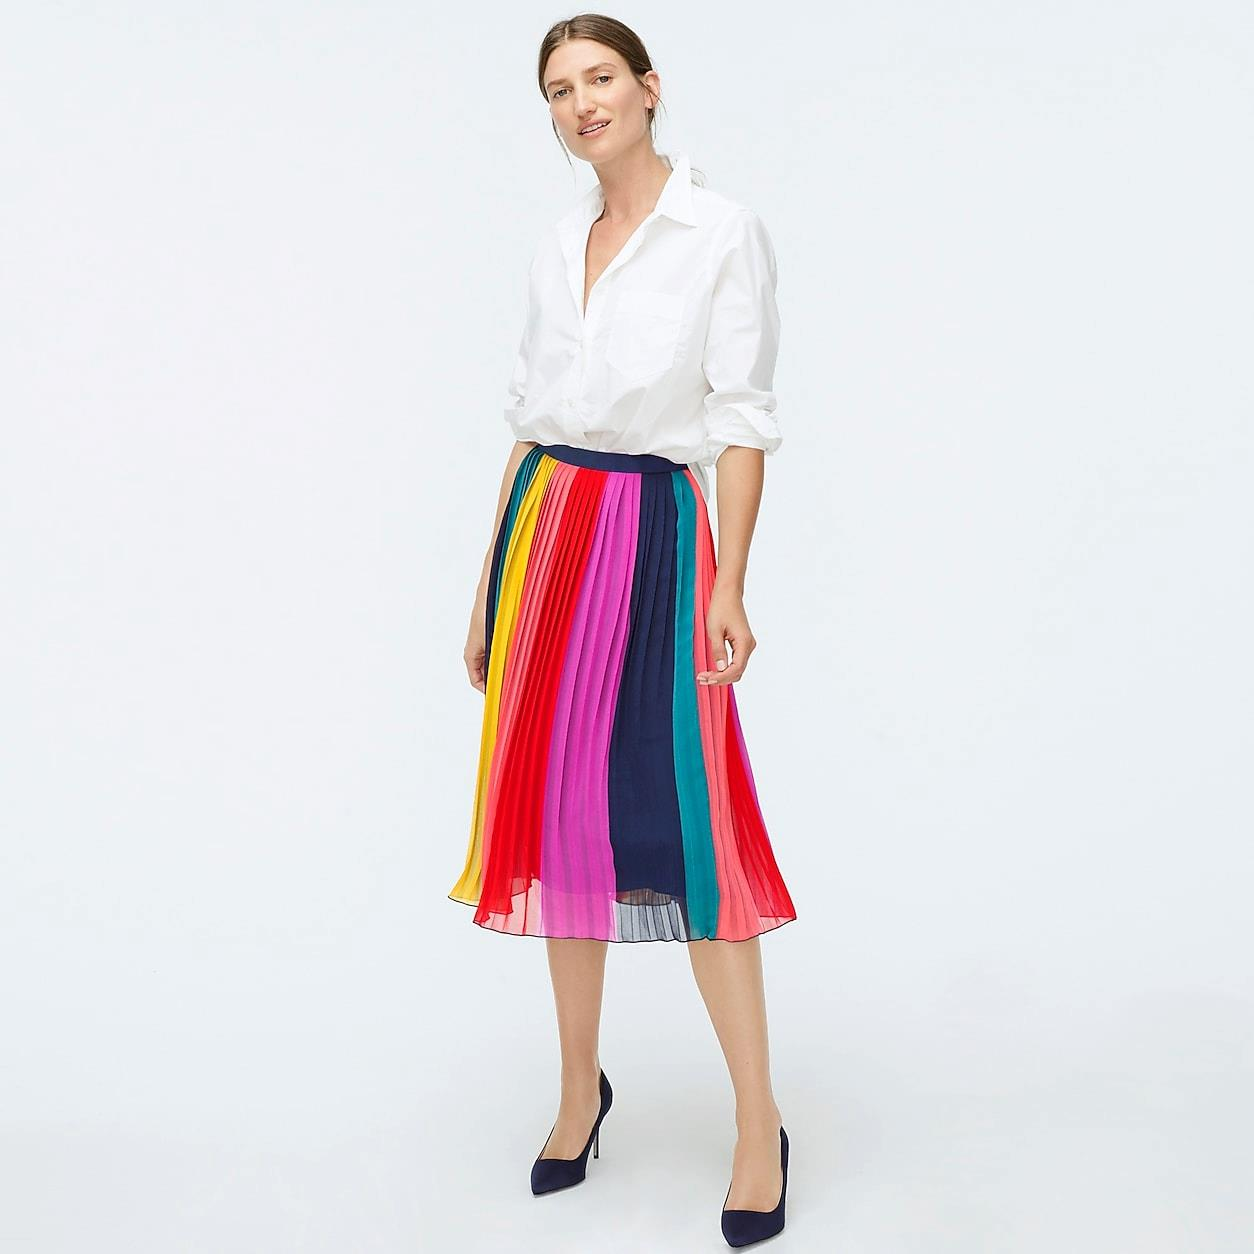 Sunburst Pleated Midi Skirt In Rainbow Colorblock